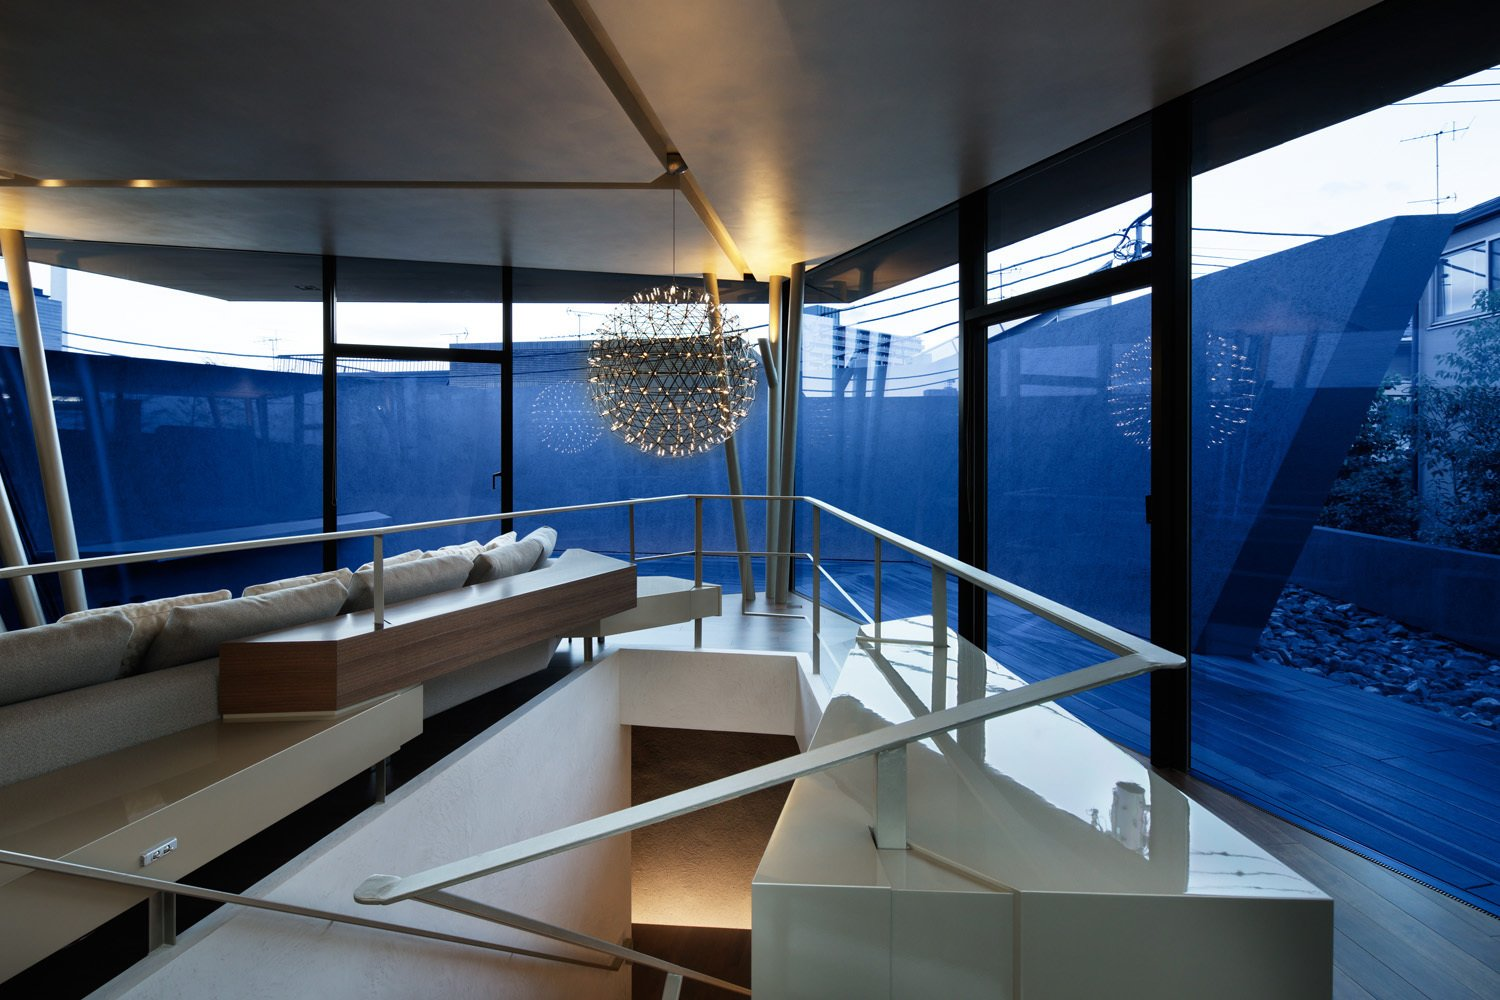 A Raimond by Moooi pendant light fixture hangs over the staircase , while angular railing emphasizes the spiral-esque floor plan.  SRK by Caroline Wallis